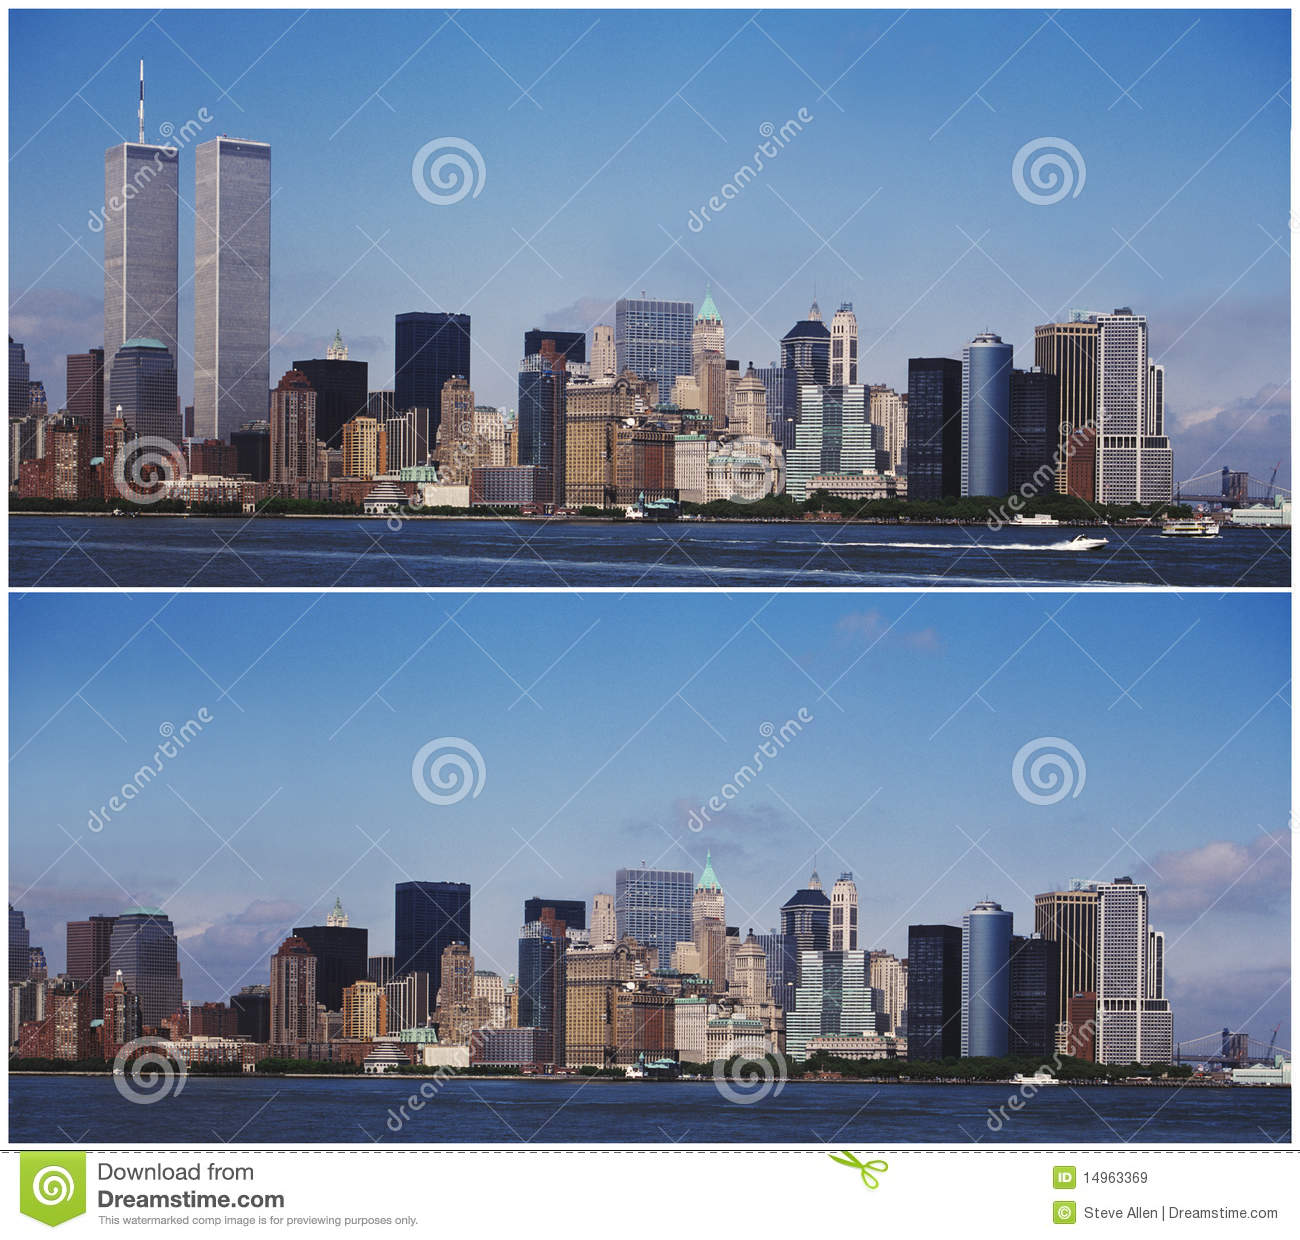 The new york manhattan skyline before and after the 9 11 terrorist